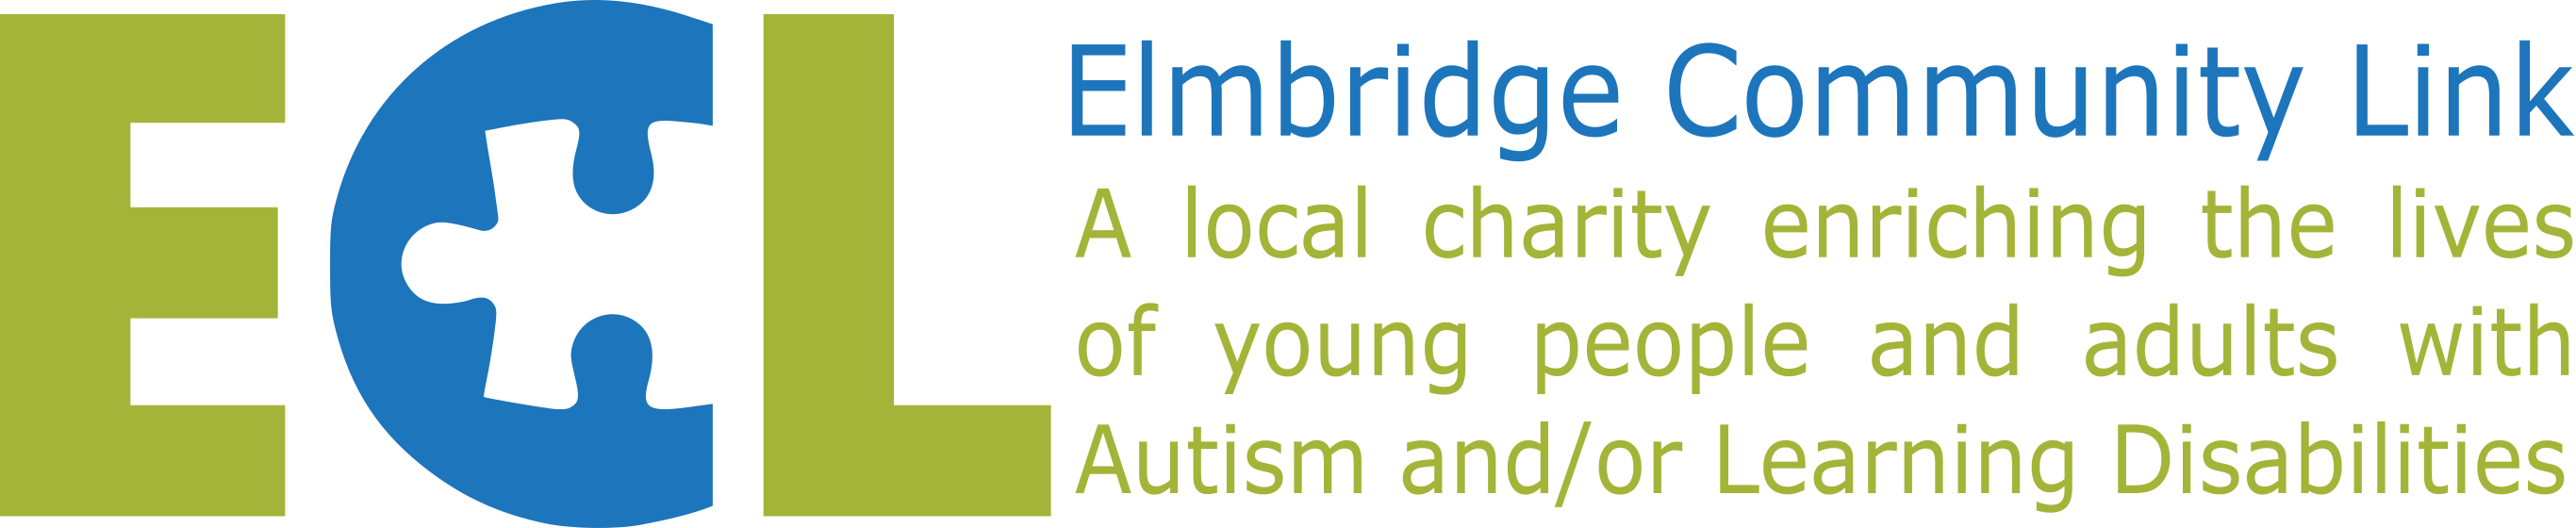 Elmbridge Community Link